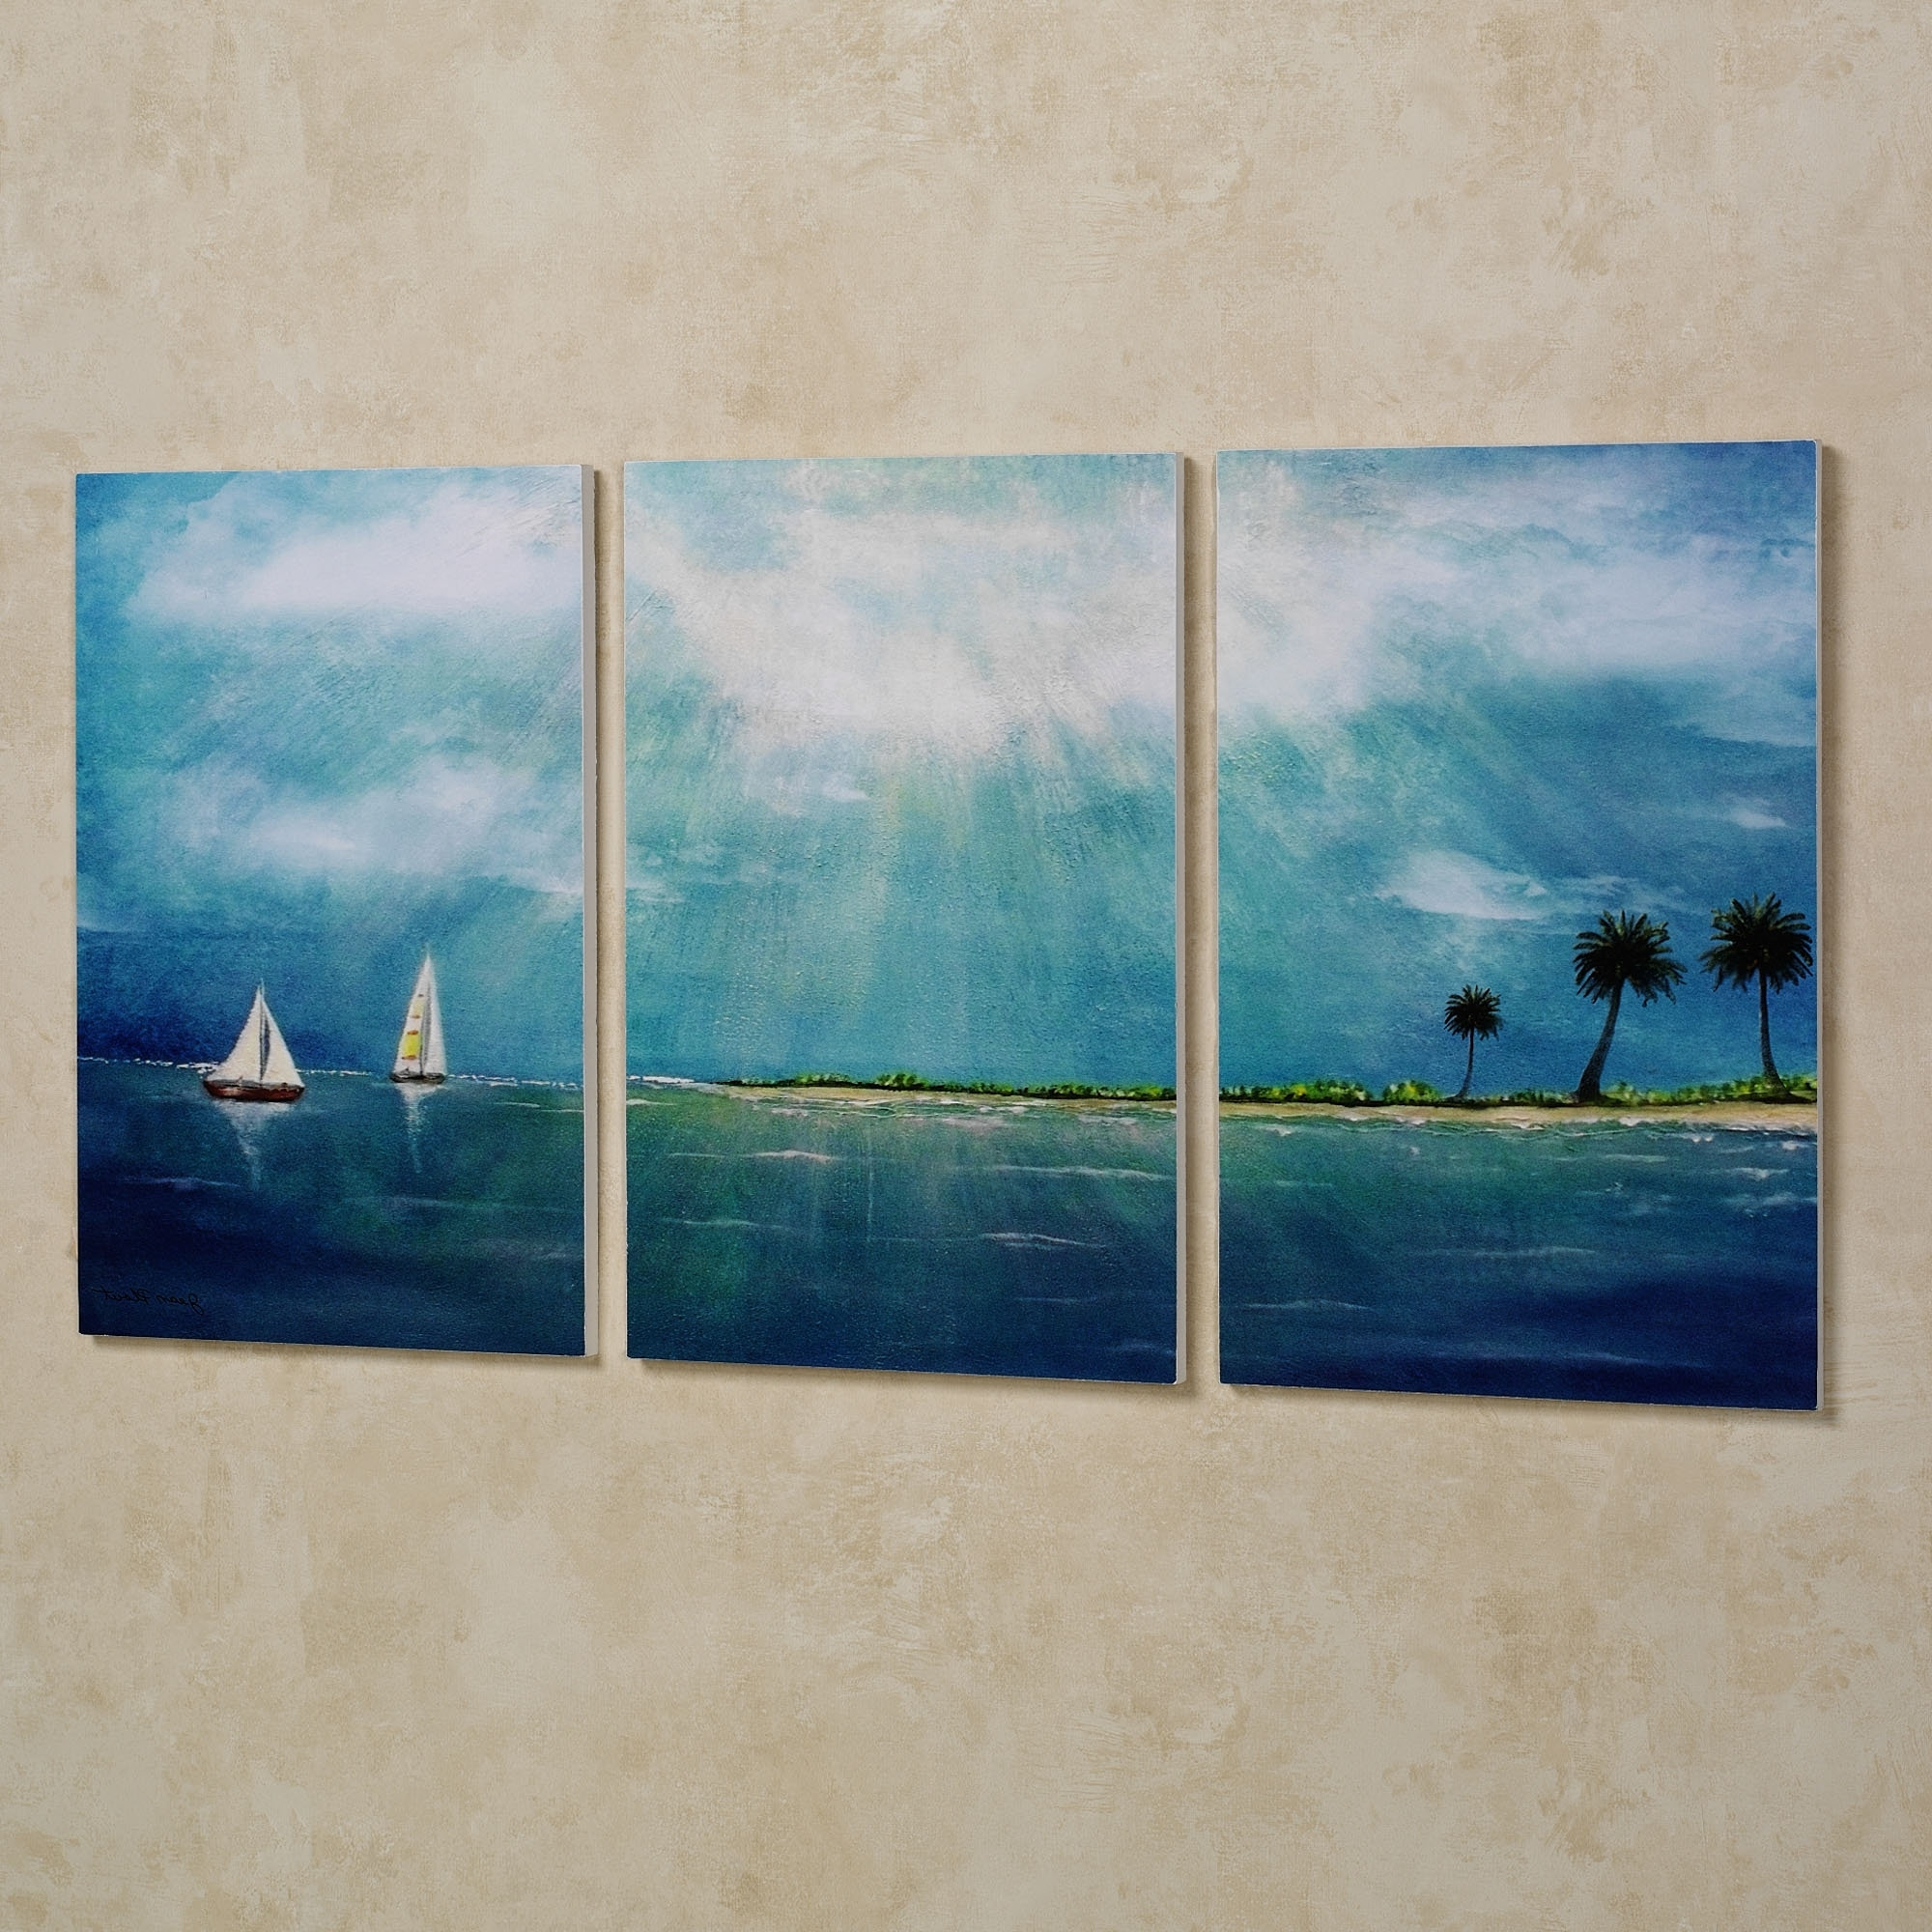 Preferred Wall Art Designs: Multi Panel Wall Art Multi Panel Sensual Wall Regarding Sensual Wall Art (View 10 of 15)